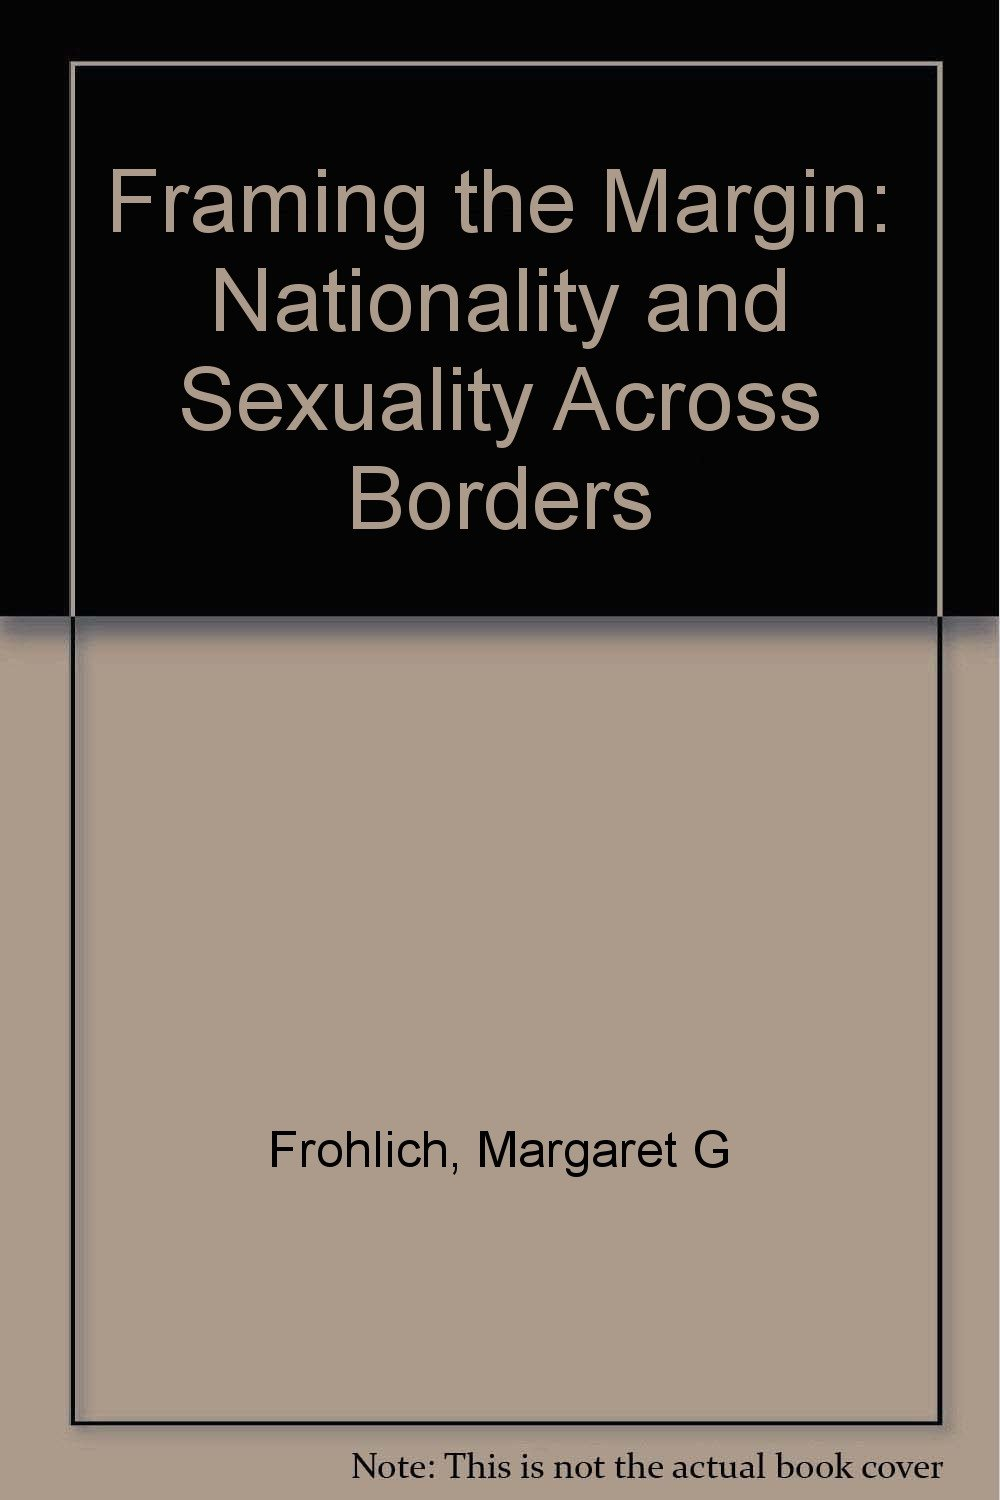 Framing the Margin: Nationality and Sexuality Across Borders